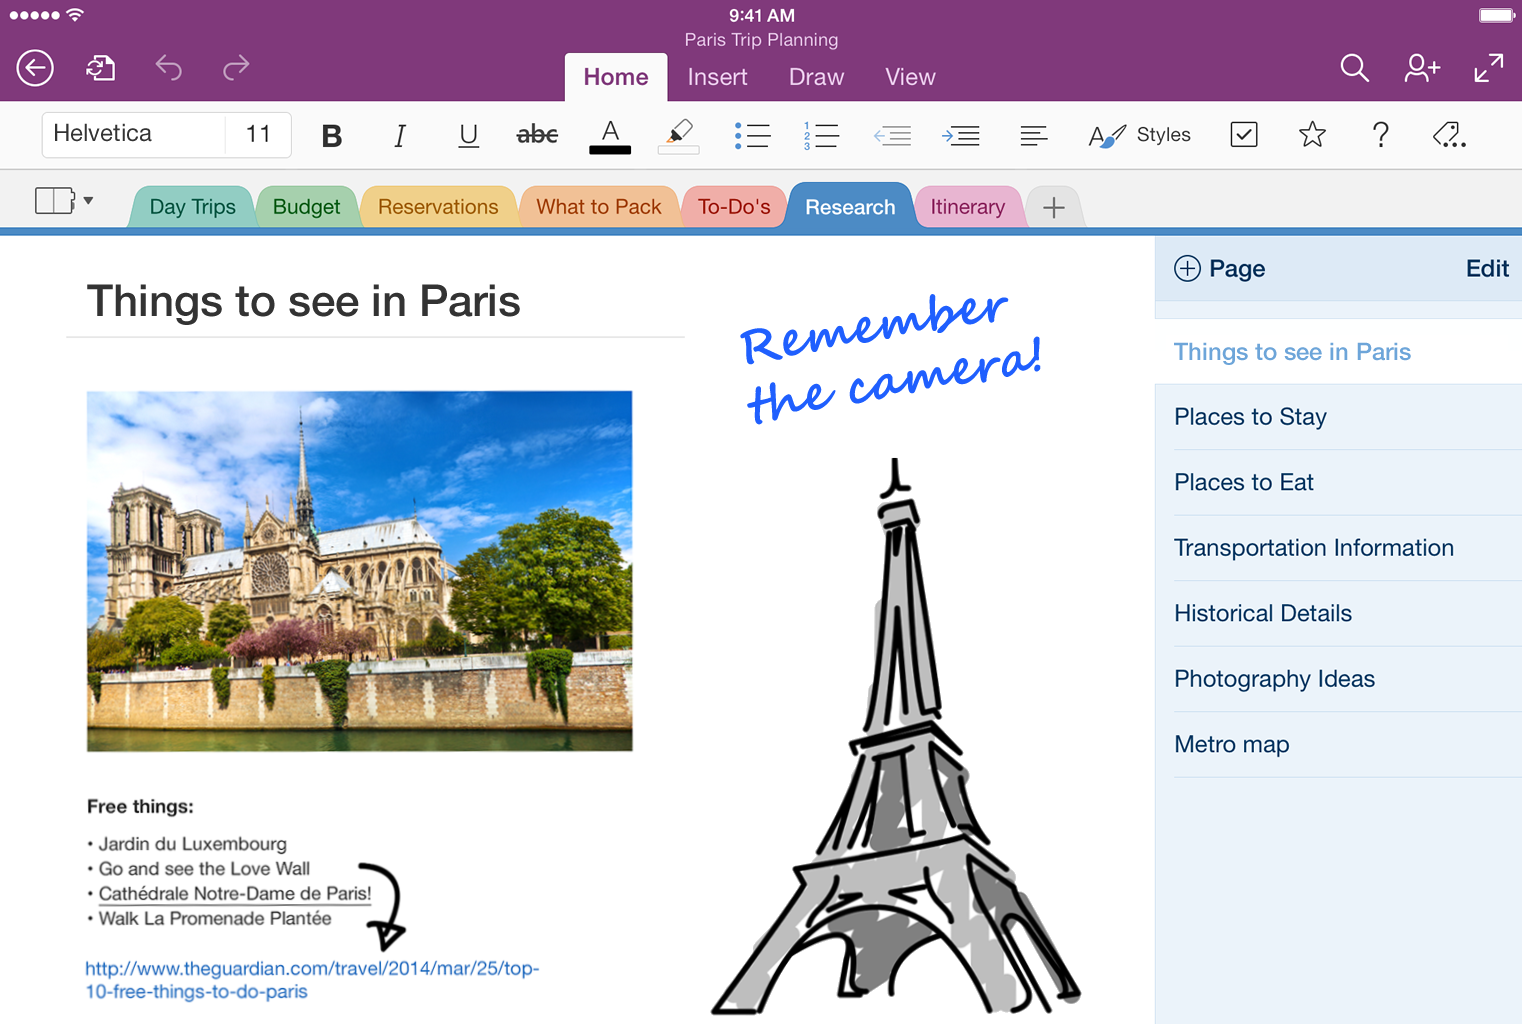 Microsoft updates onenote with ocr support across all platforms microsoft updates onenote with ocr support across all platforms ipad app gets handwriting support venturebeat baditri Choice Image